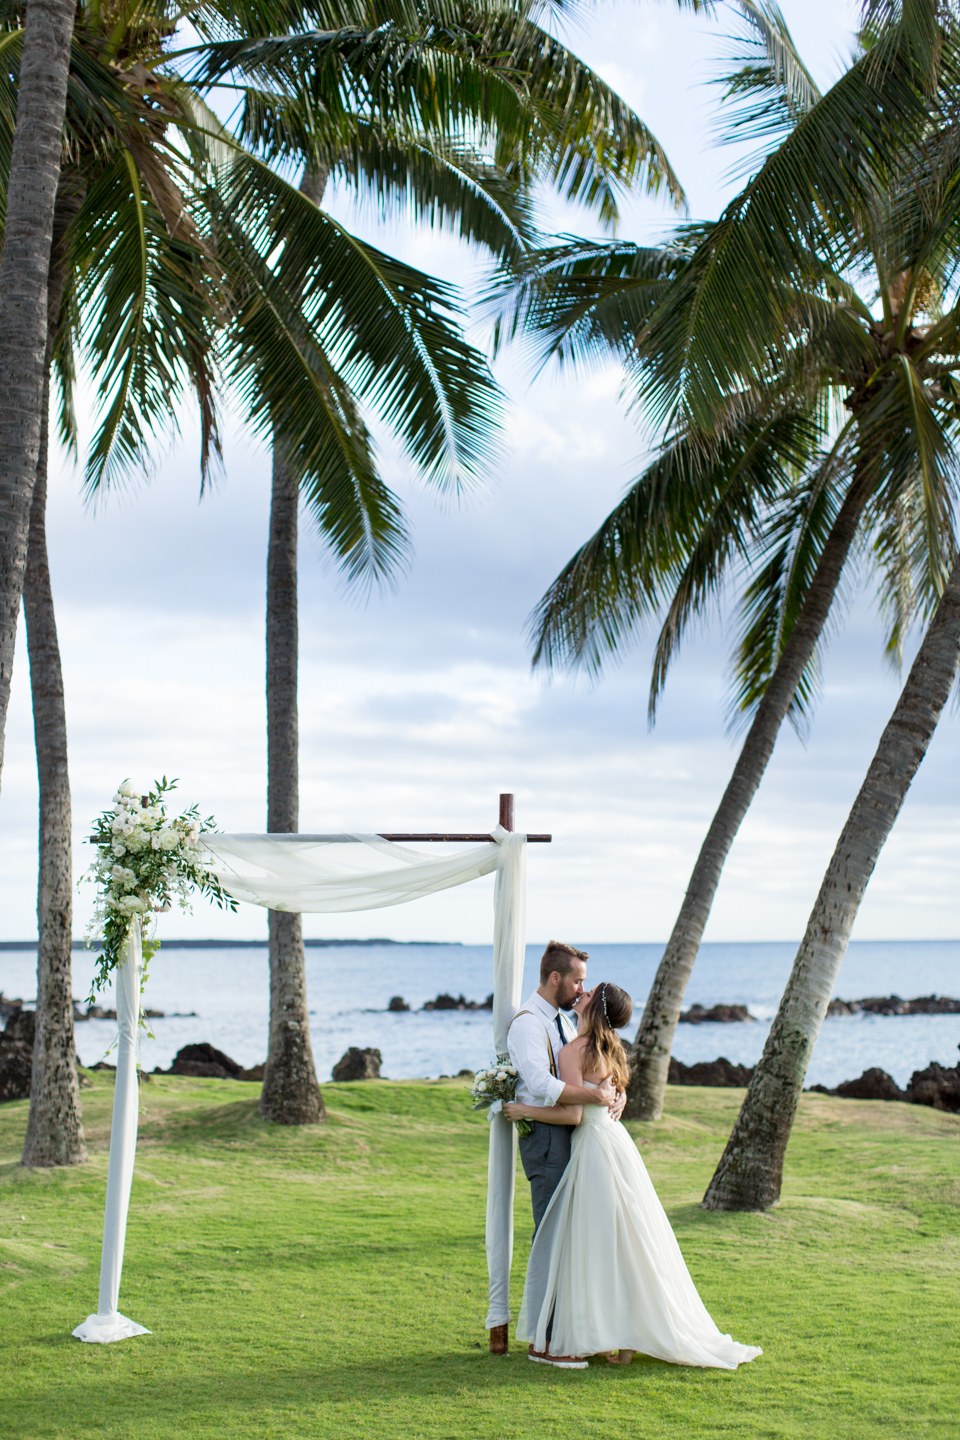 058_maui-wedding-photographer-kaua-photography